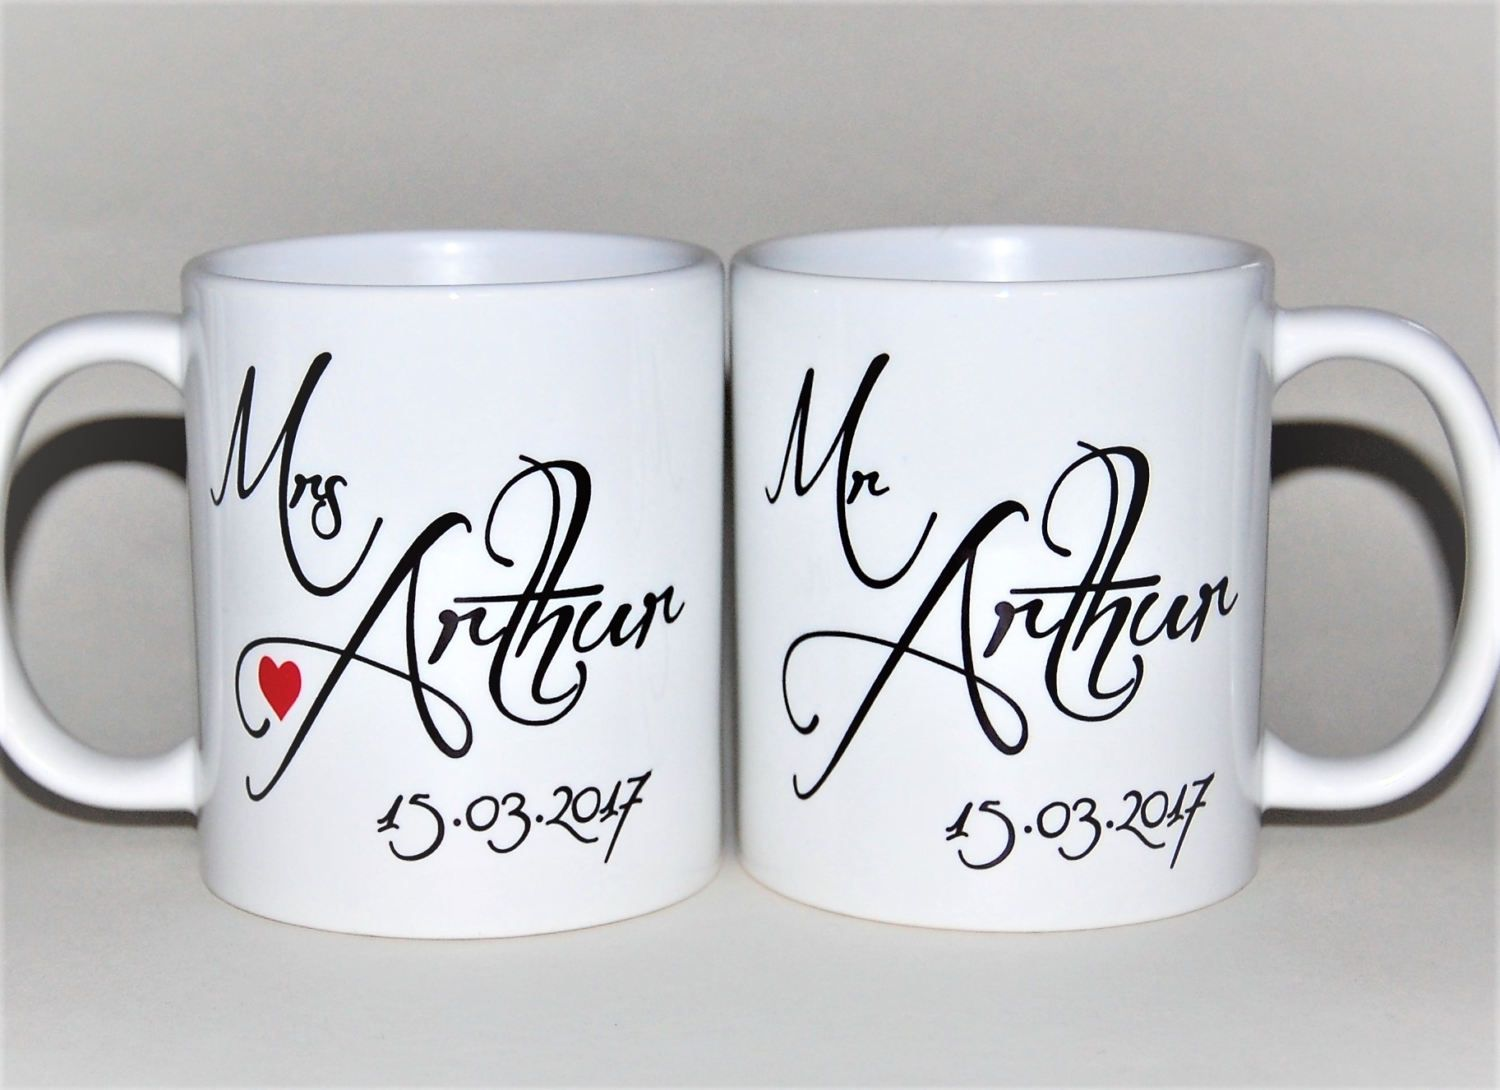 Mr And Mrs Mugs Personalised With Date By Totalmug Gift For Wedding